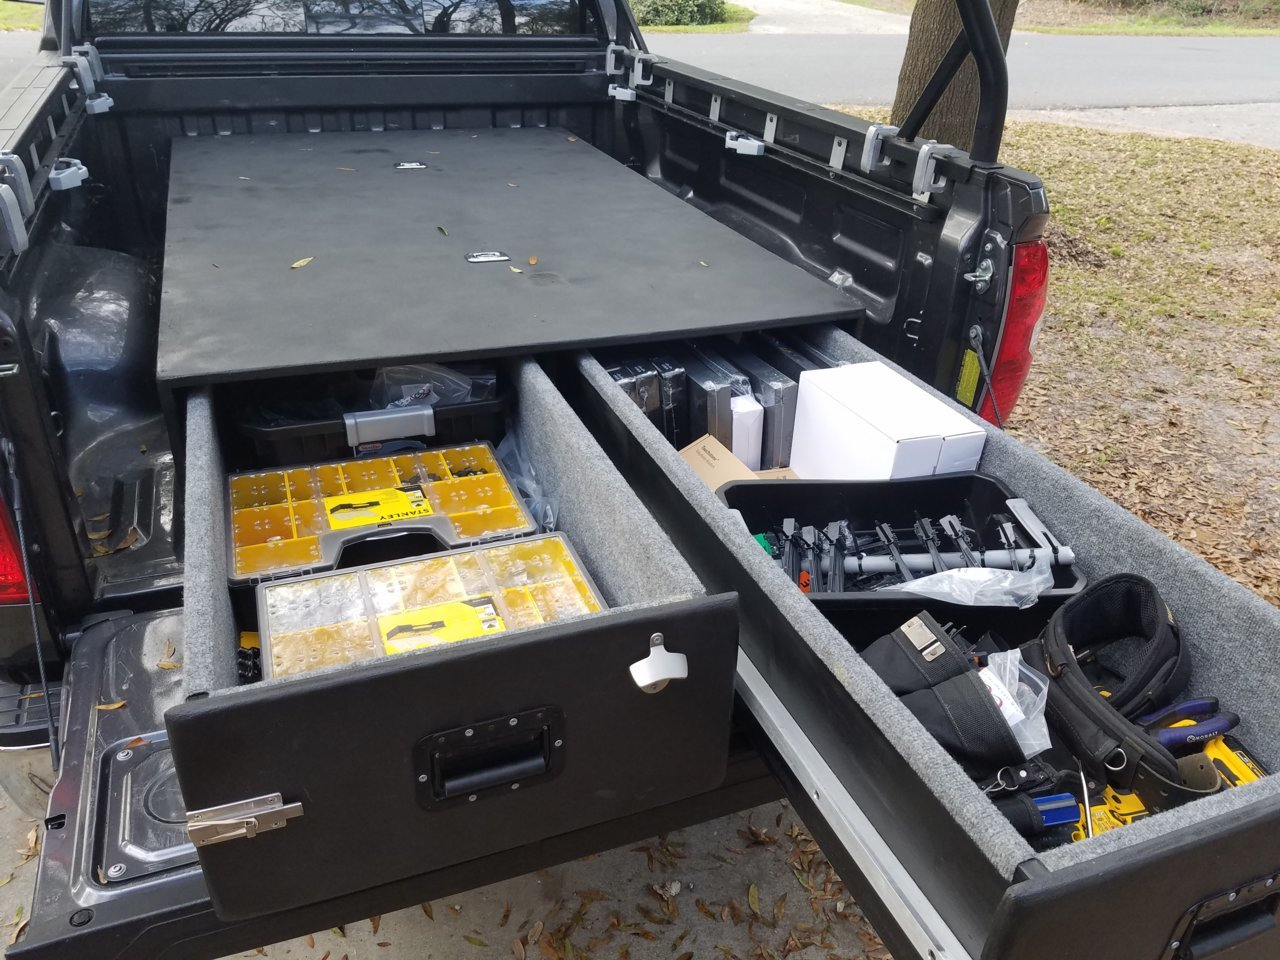 Tundra Diy Storage Drawer System Toyota Tundra Forum